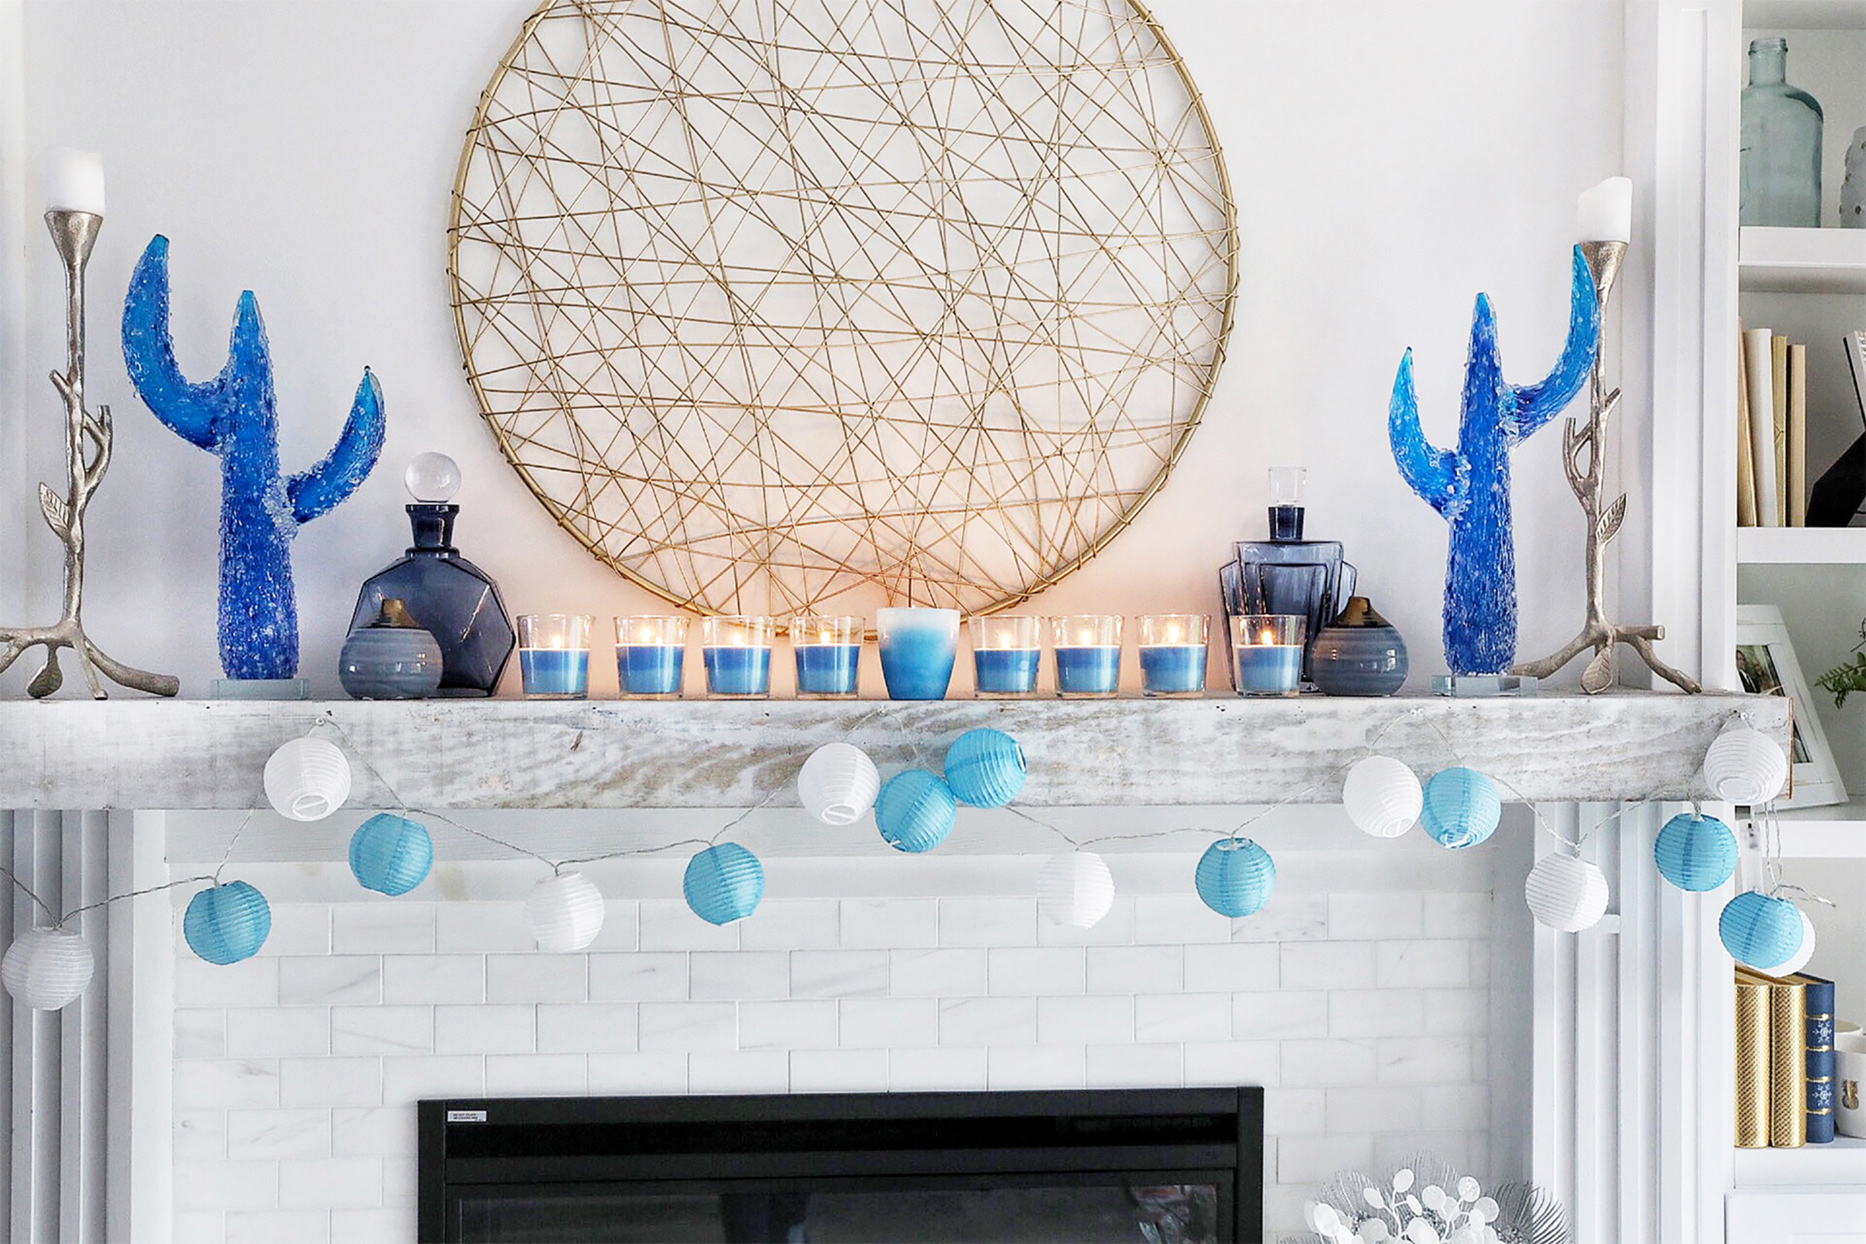 mantel decorated with blue crayon menorah candles